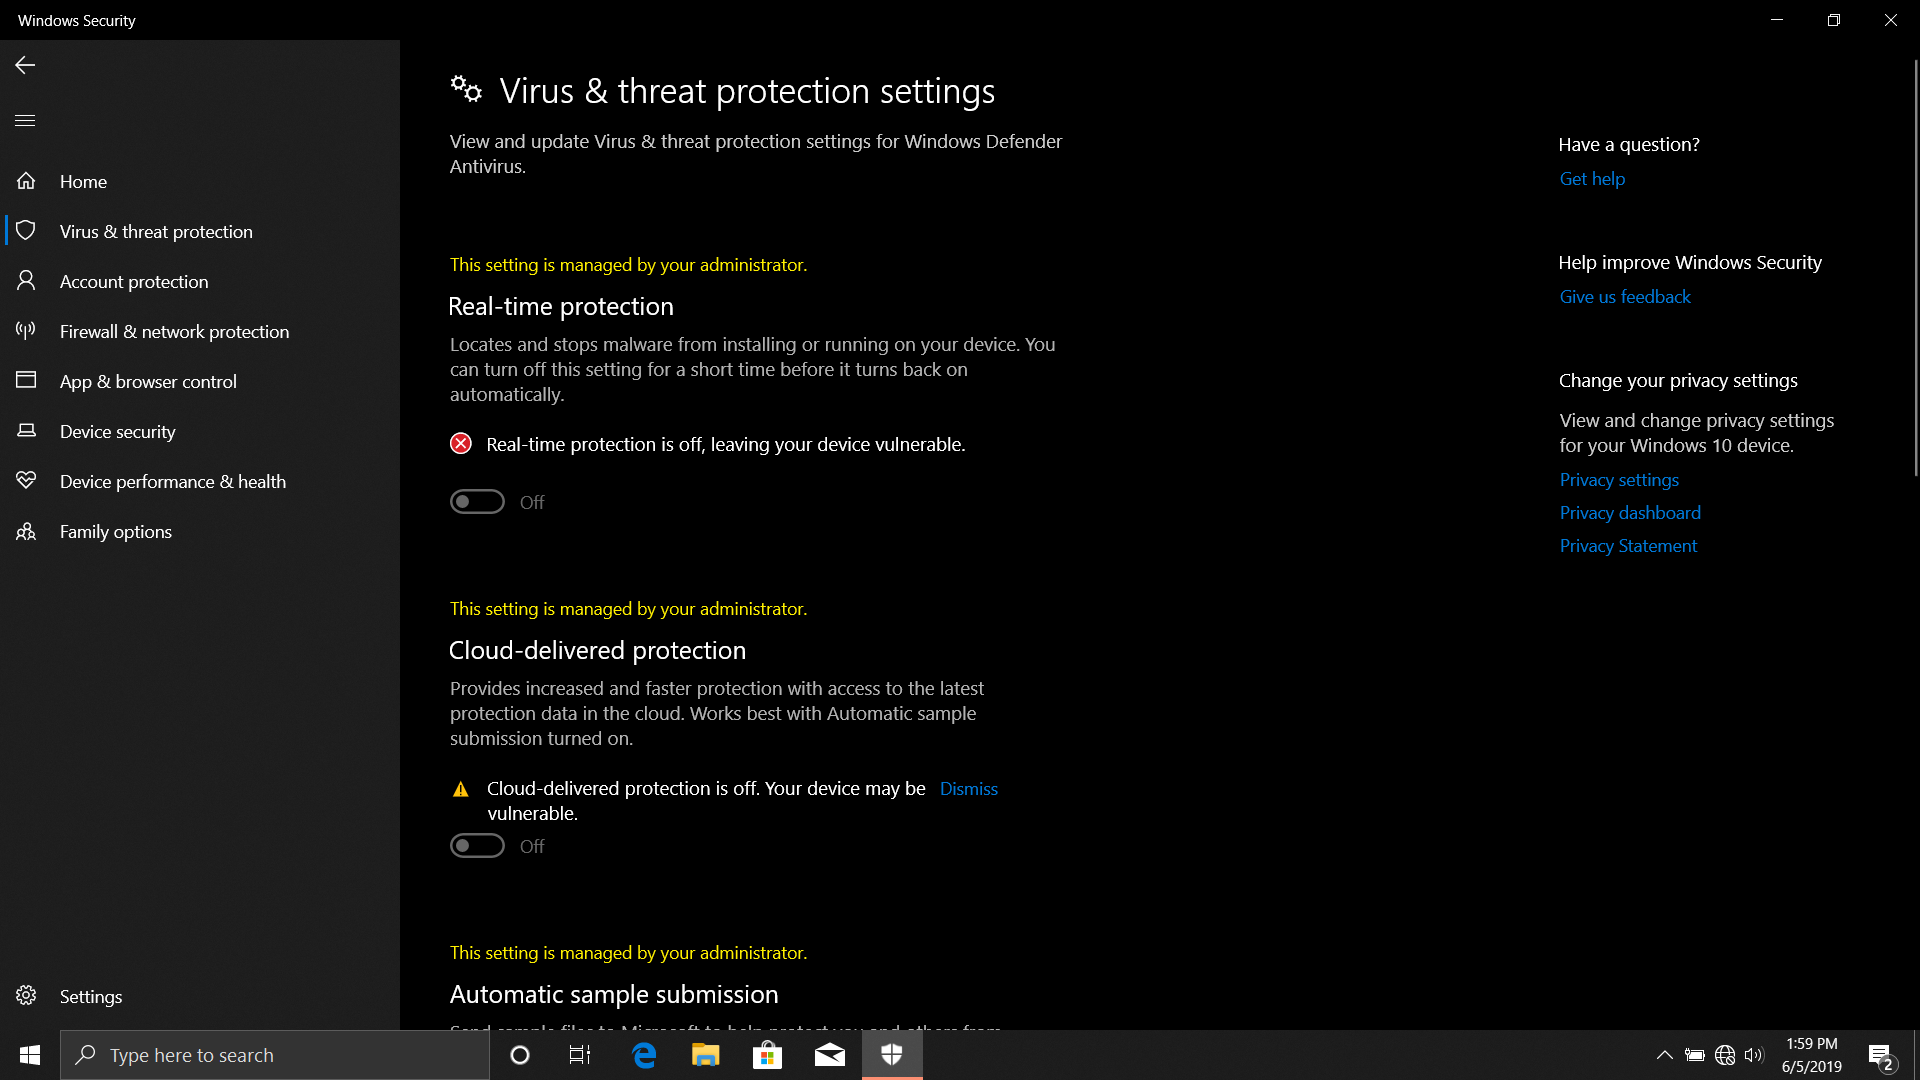 Windows 10 Security Center Issues with Other Providers and Itself. 1e8395a0-41fc-4f85-a908-e4302af866f4?upload=true.png